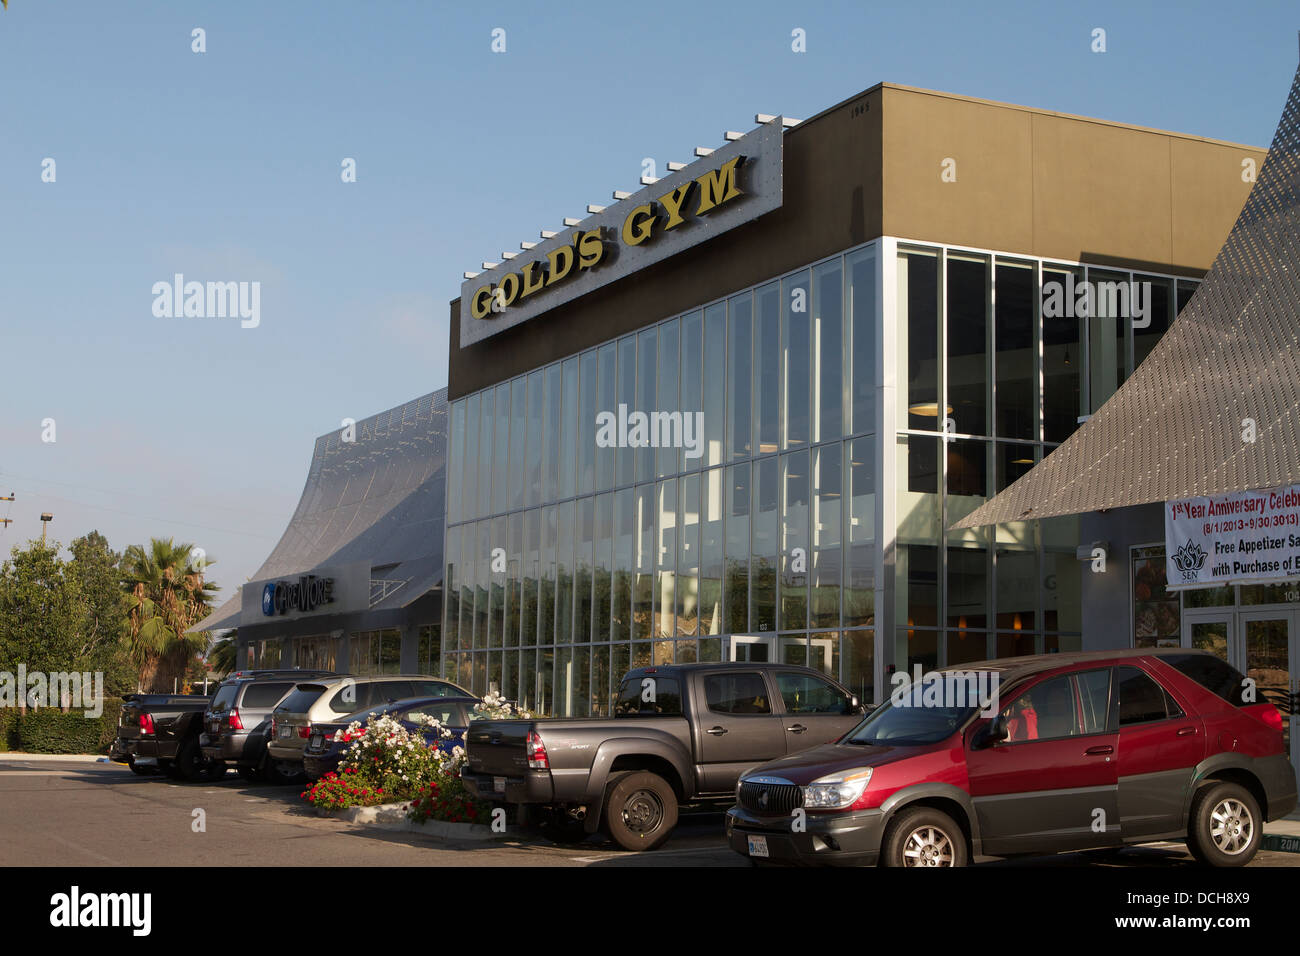 A outside view of Golds Gym fitness center in Santa Ana California USA - Stock Image